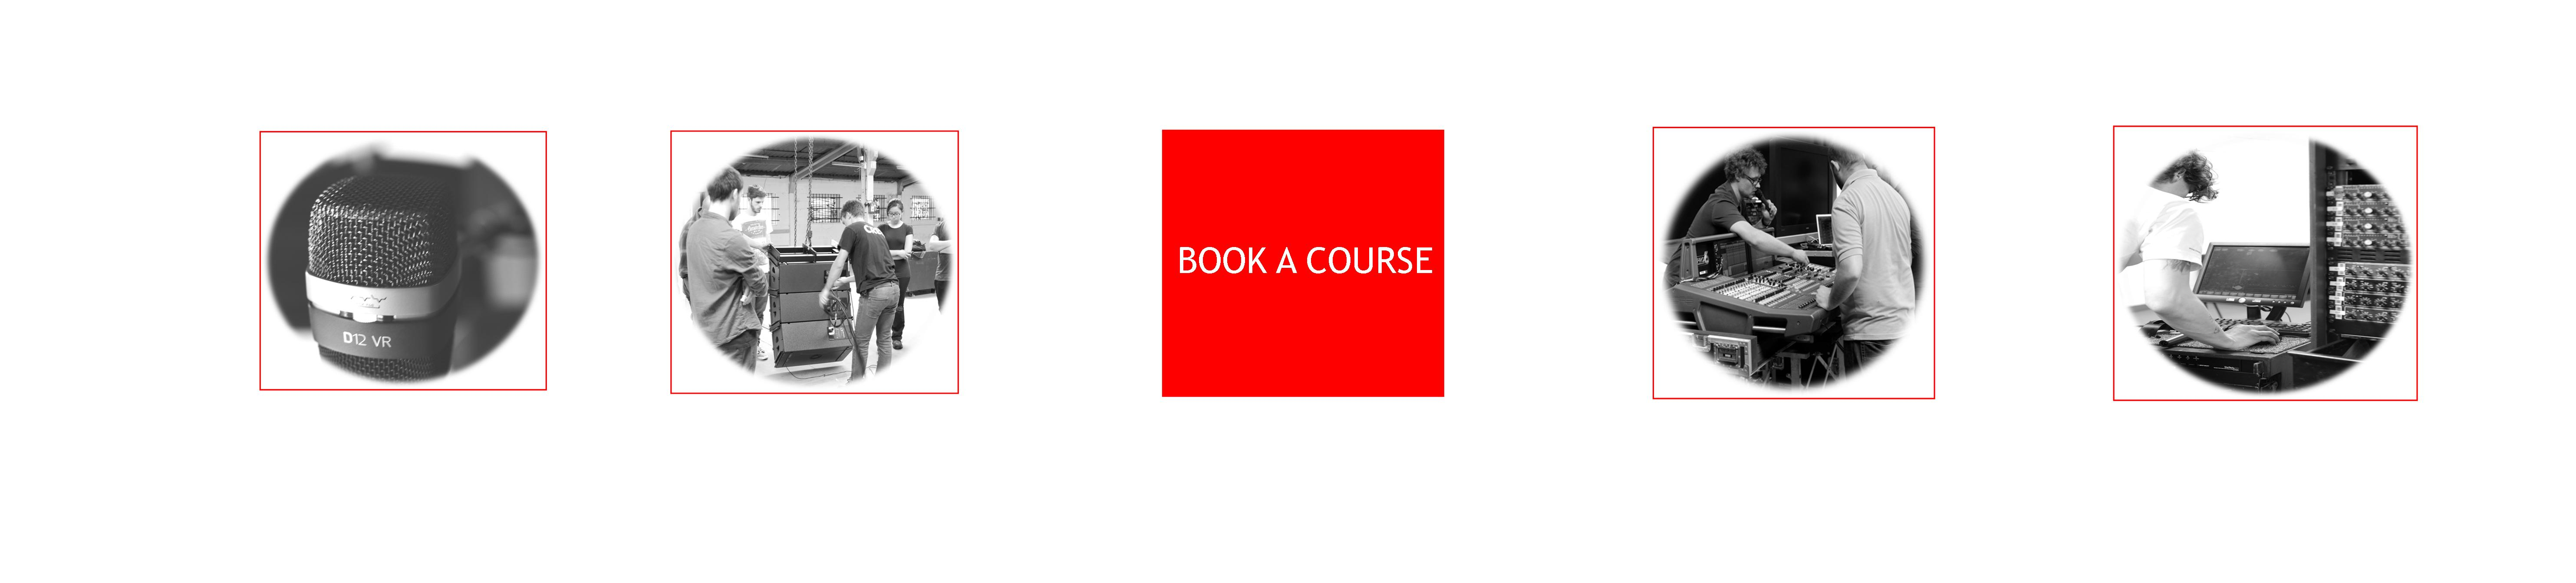 Book-a-course-slider